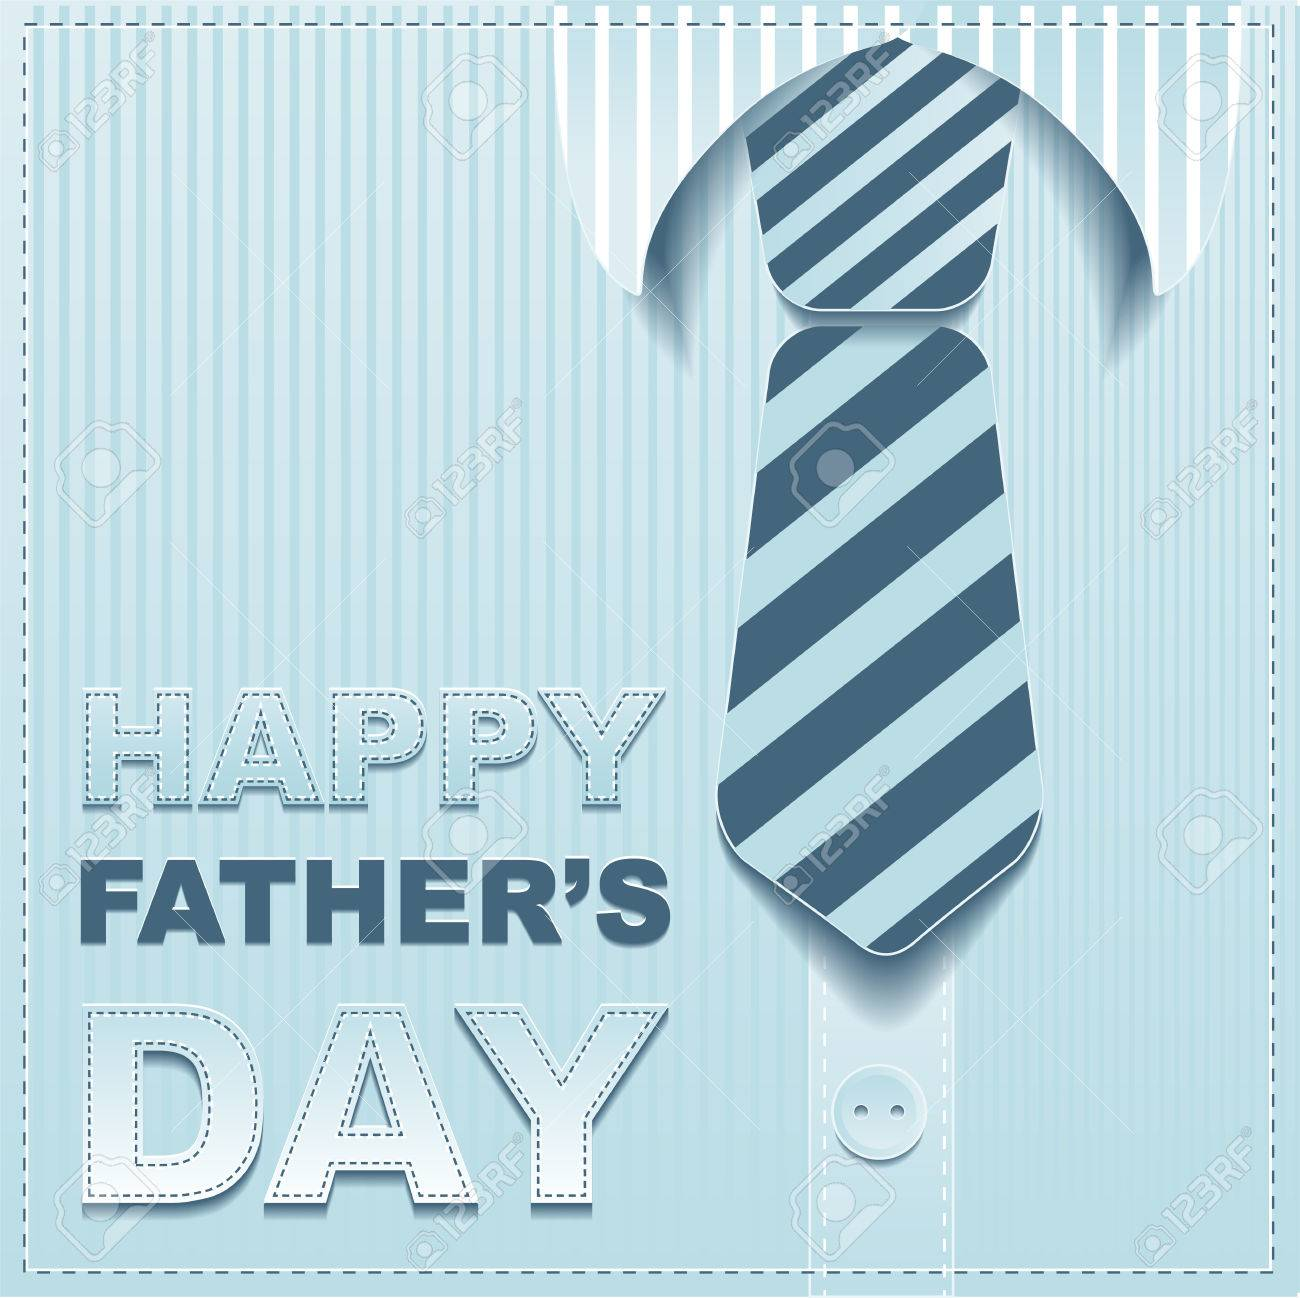 Striped tie on a background of the shirt. Template greeting card for Fathers Day. Illustration in vector format - 40013223